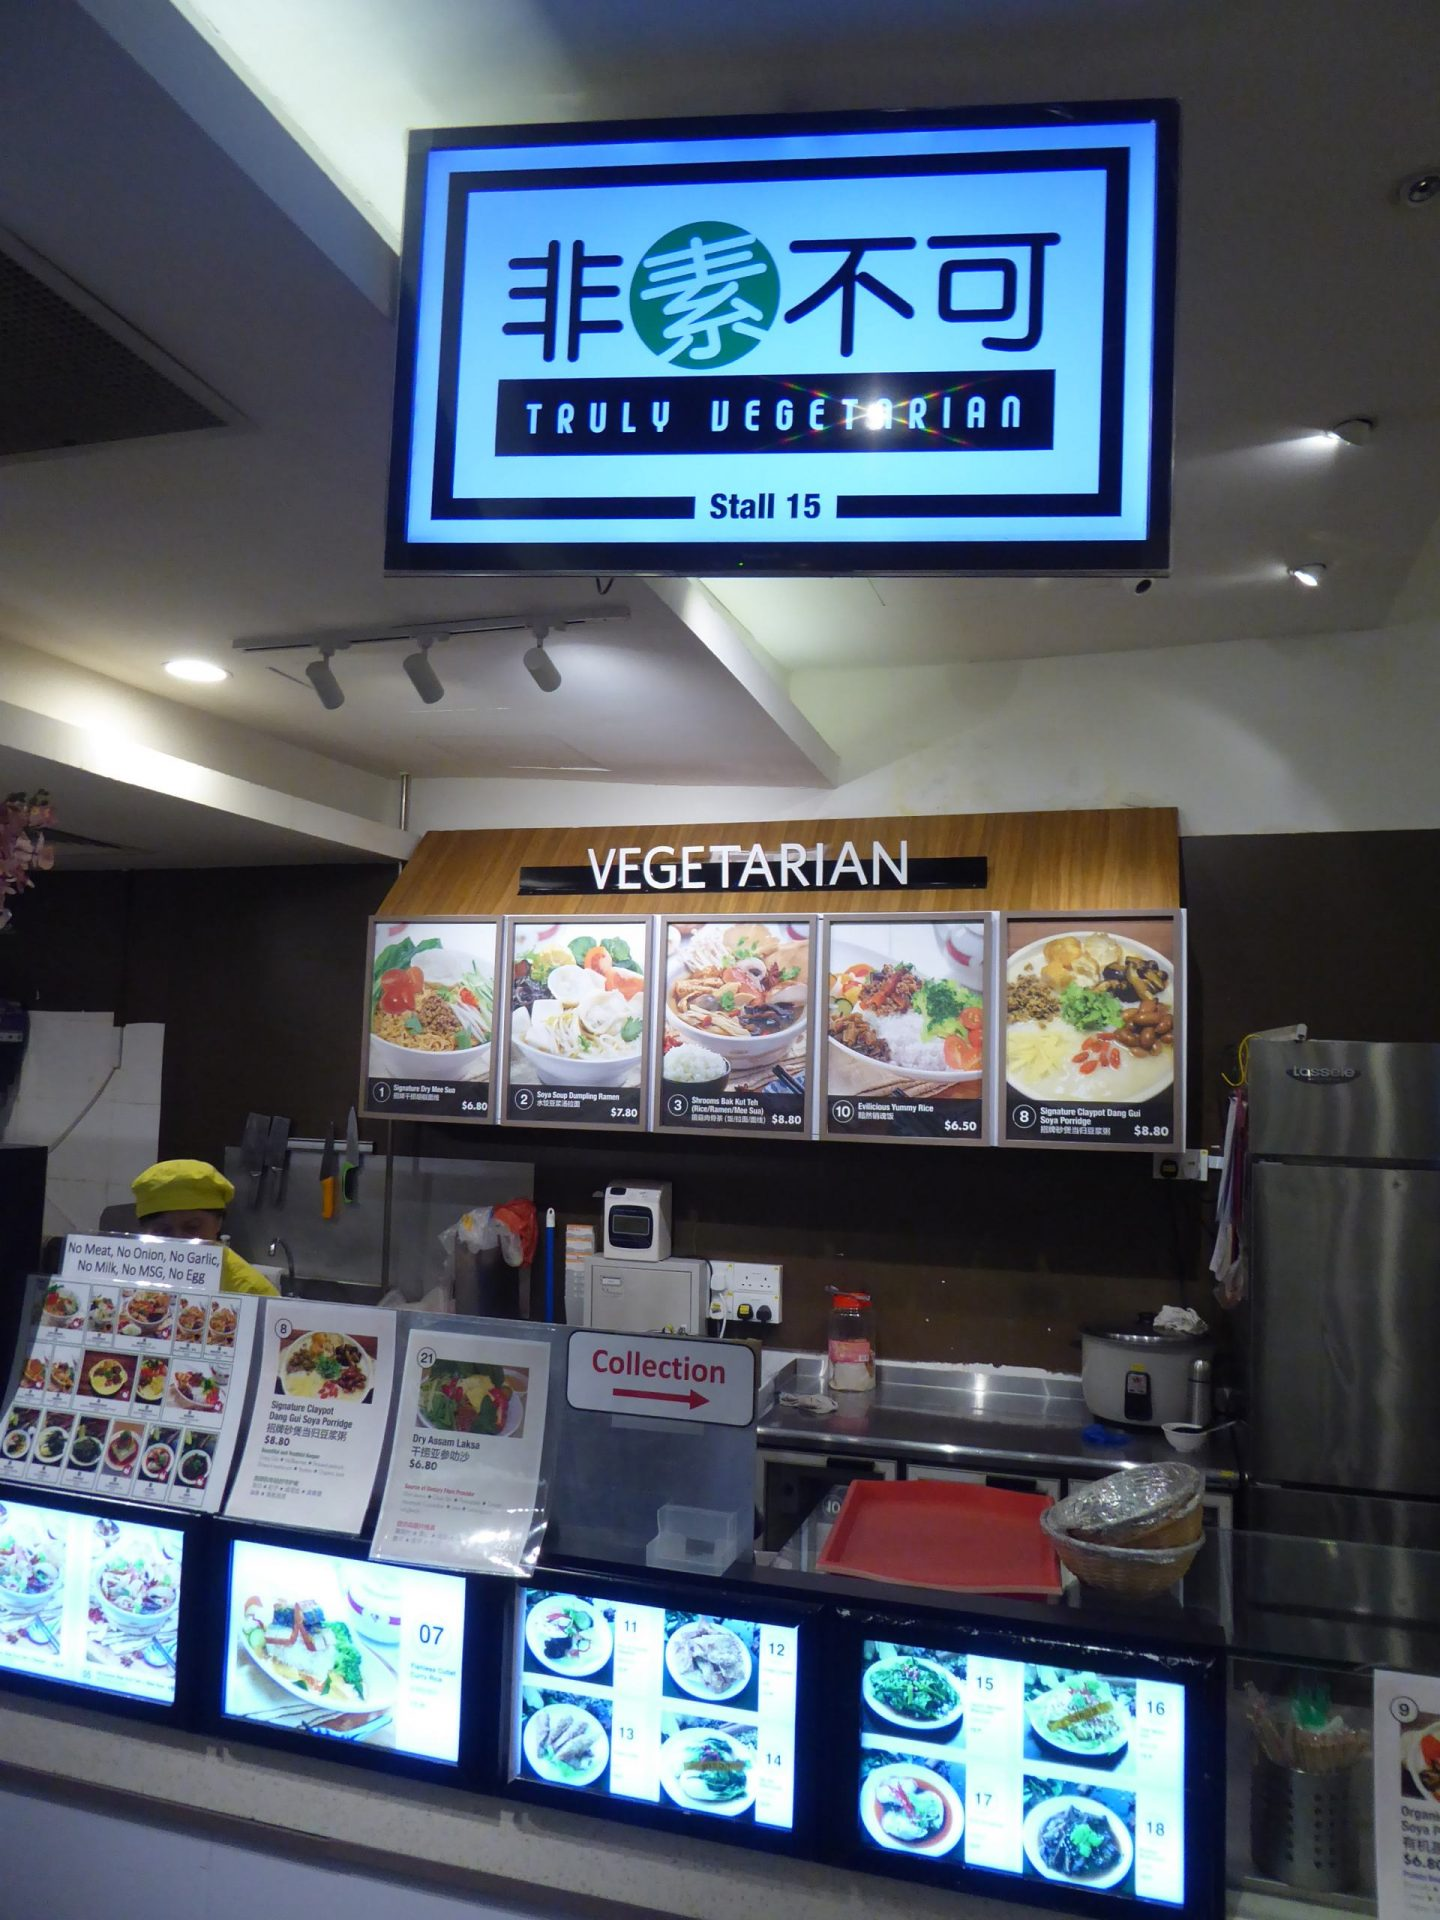 The Truly Vegetarian 非素不可  stall. It has several pictures of food that can be ordered.